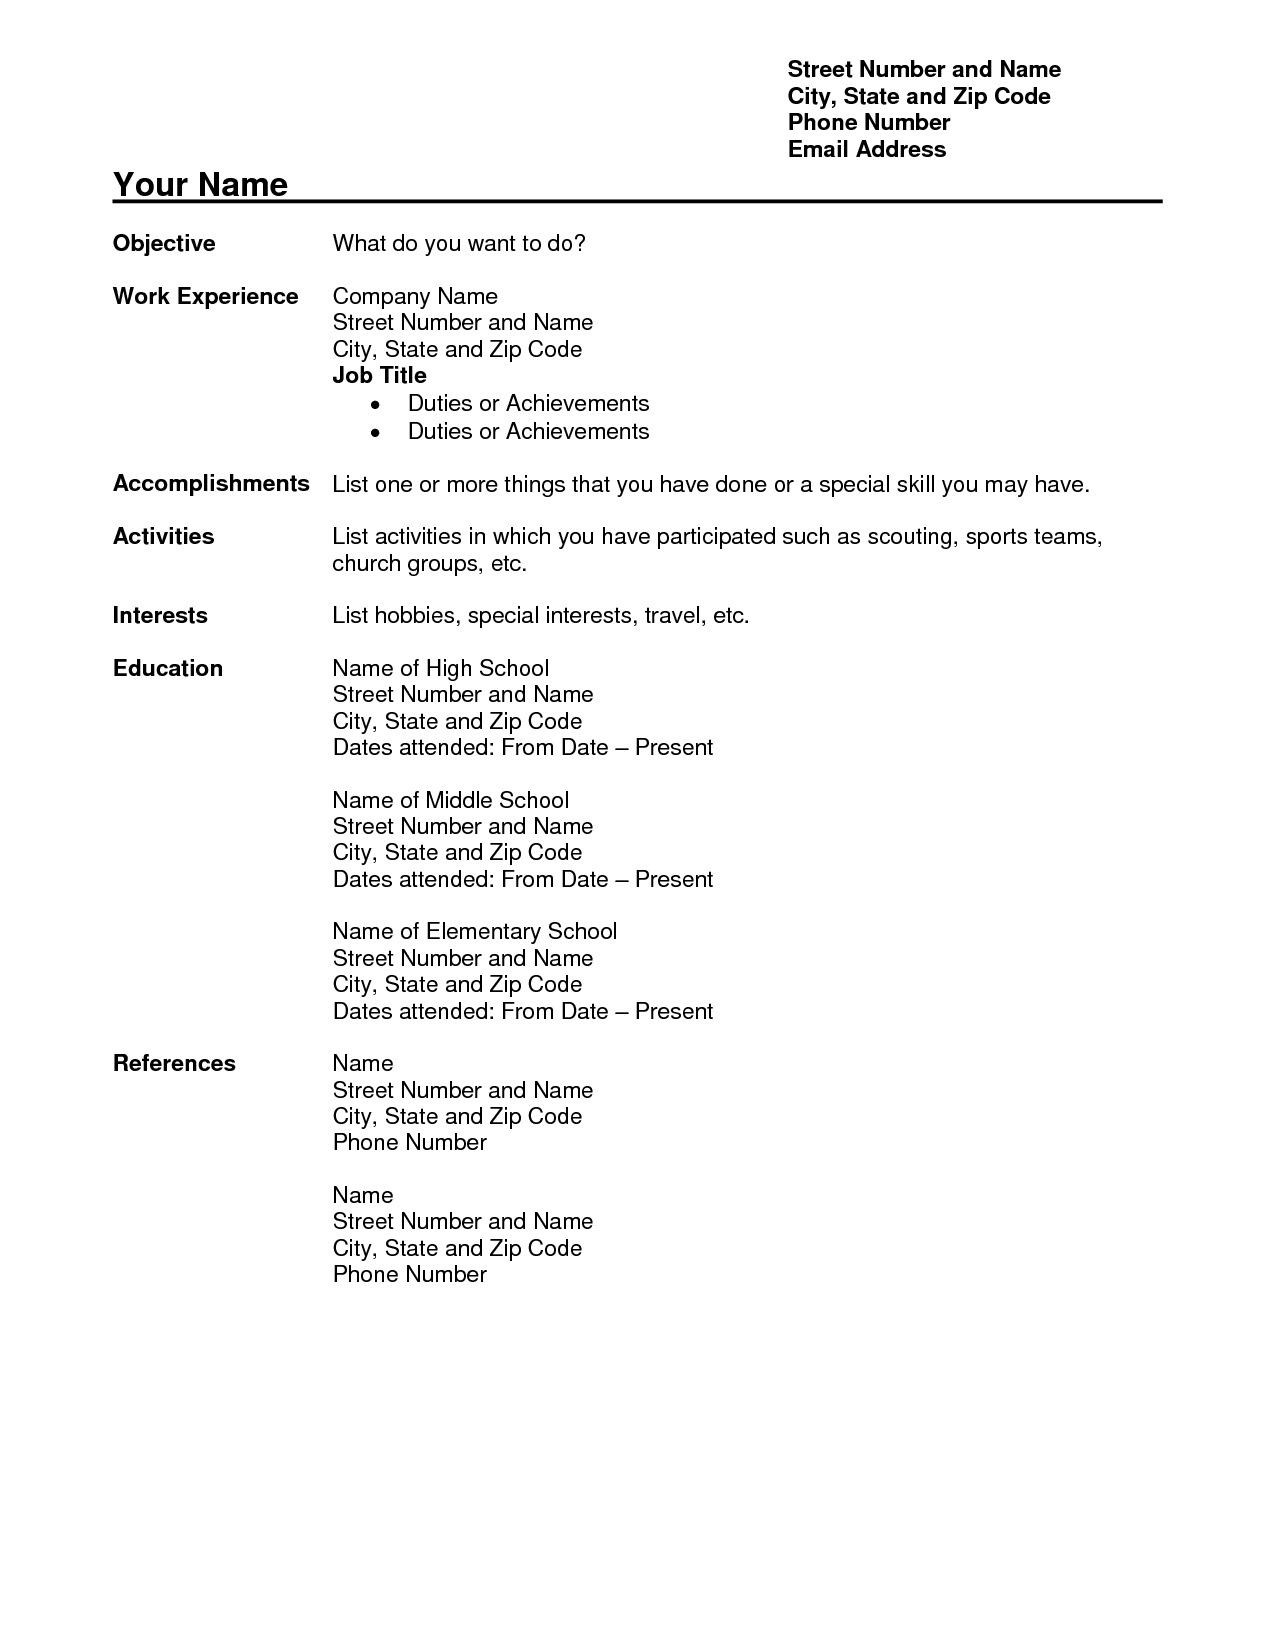 Charming Free Teacher Resume Templates Download Free Teacher Resume Templates  Download, Free Teacher Resume Templates Microsoft To Resume Free Download